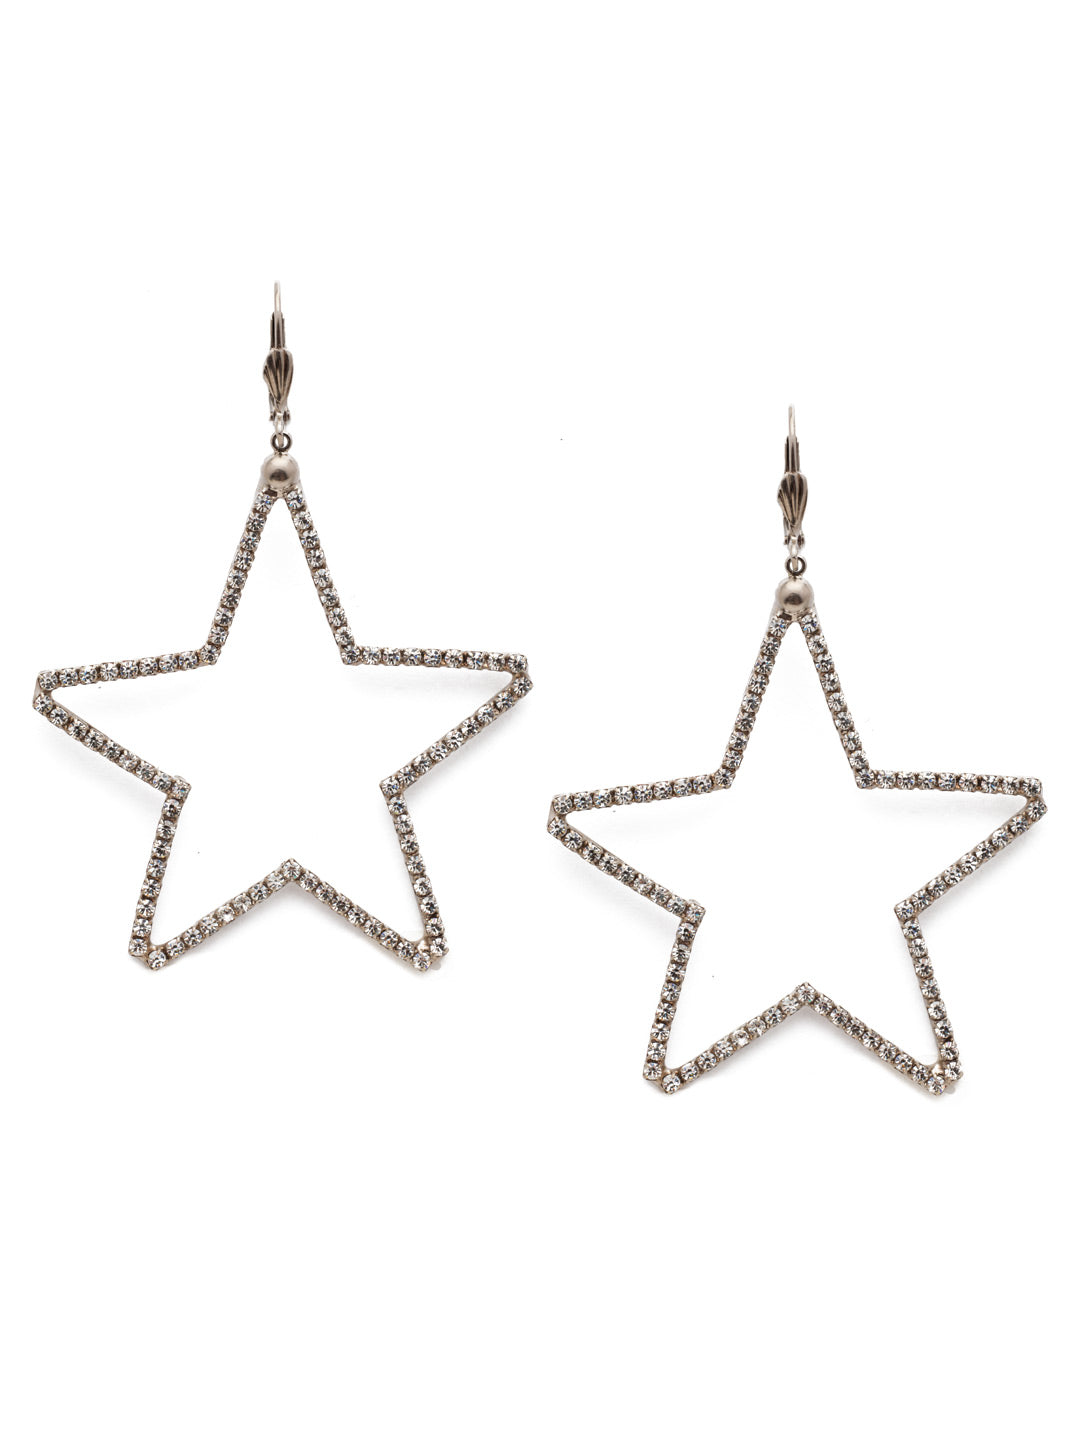 Starmont Statement Earring - EEB46ASCRY